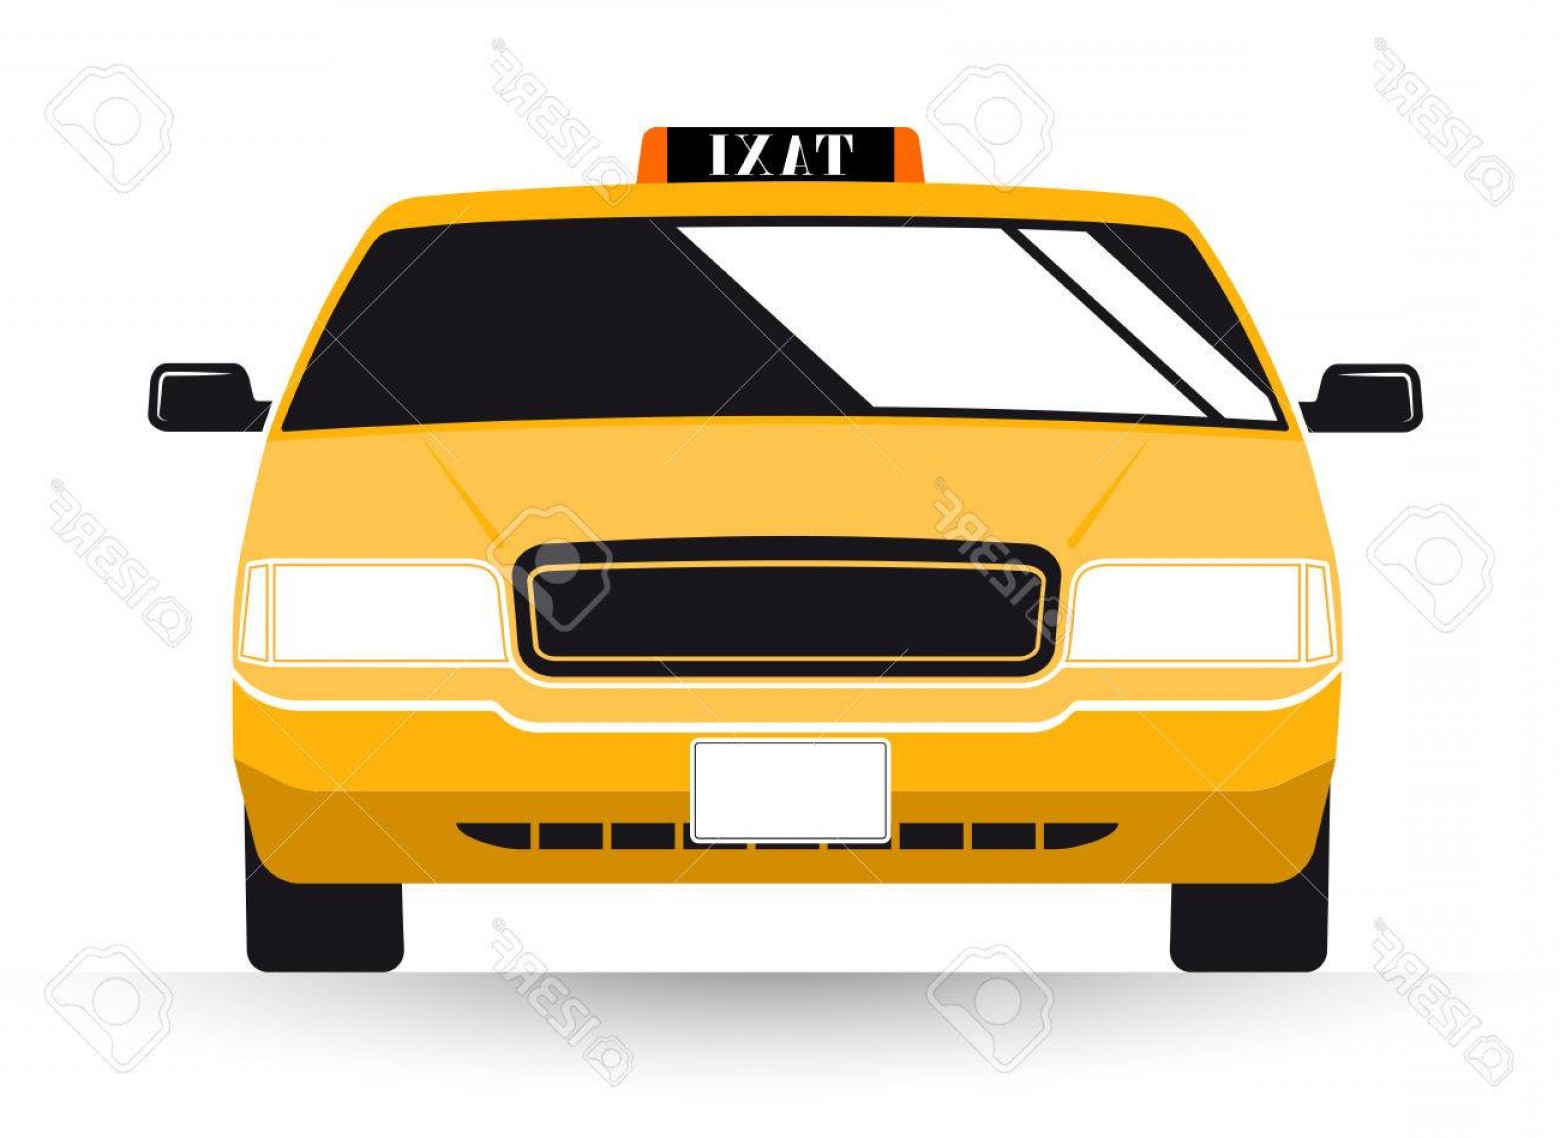 New York Taxi Cab Vector: Photostock Vector New York Yellow Taxi Cab On White Background